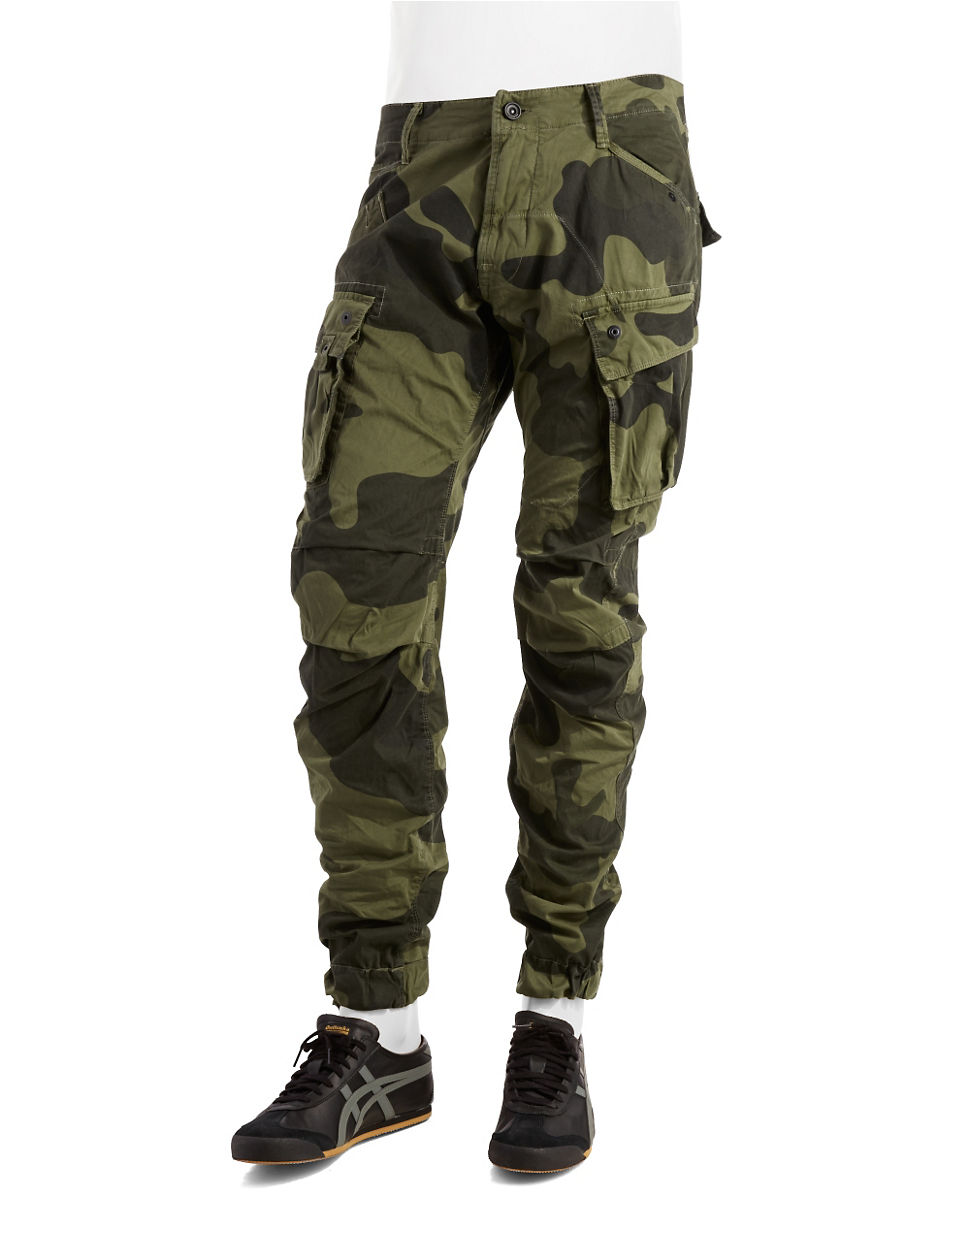 g star raw camouflage cargo pants in green for men lyst. Black Bedroom Furniture Sets. Home Design Ideas